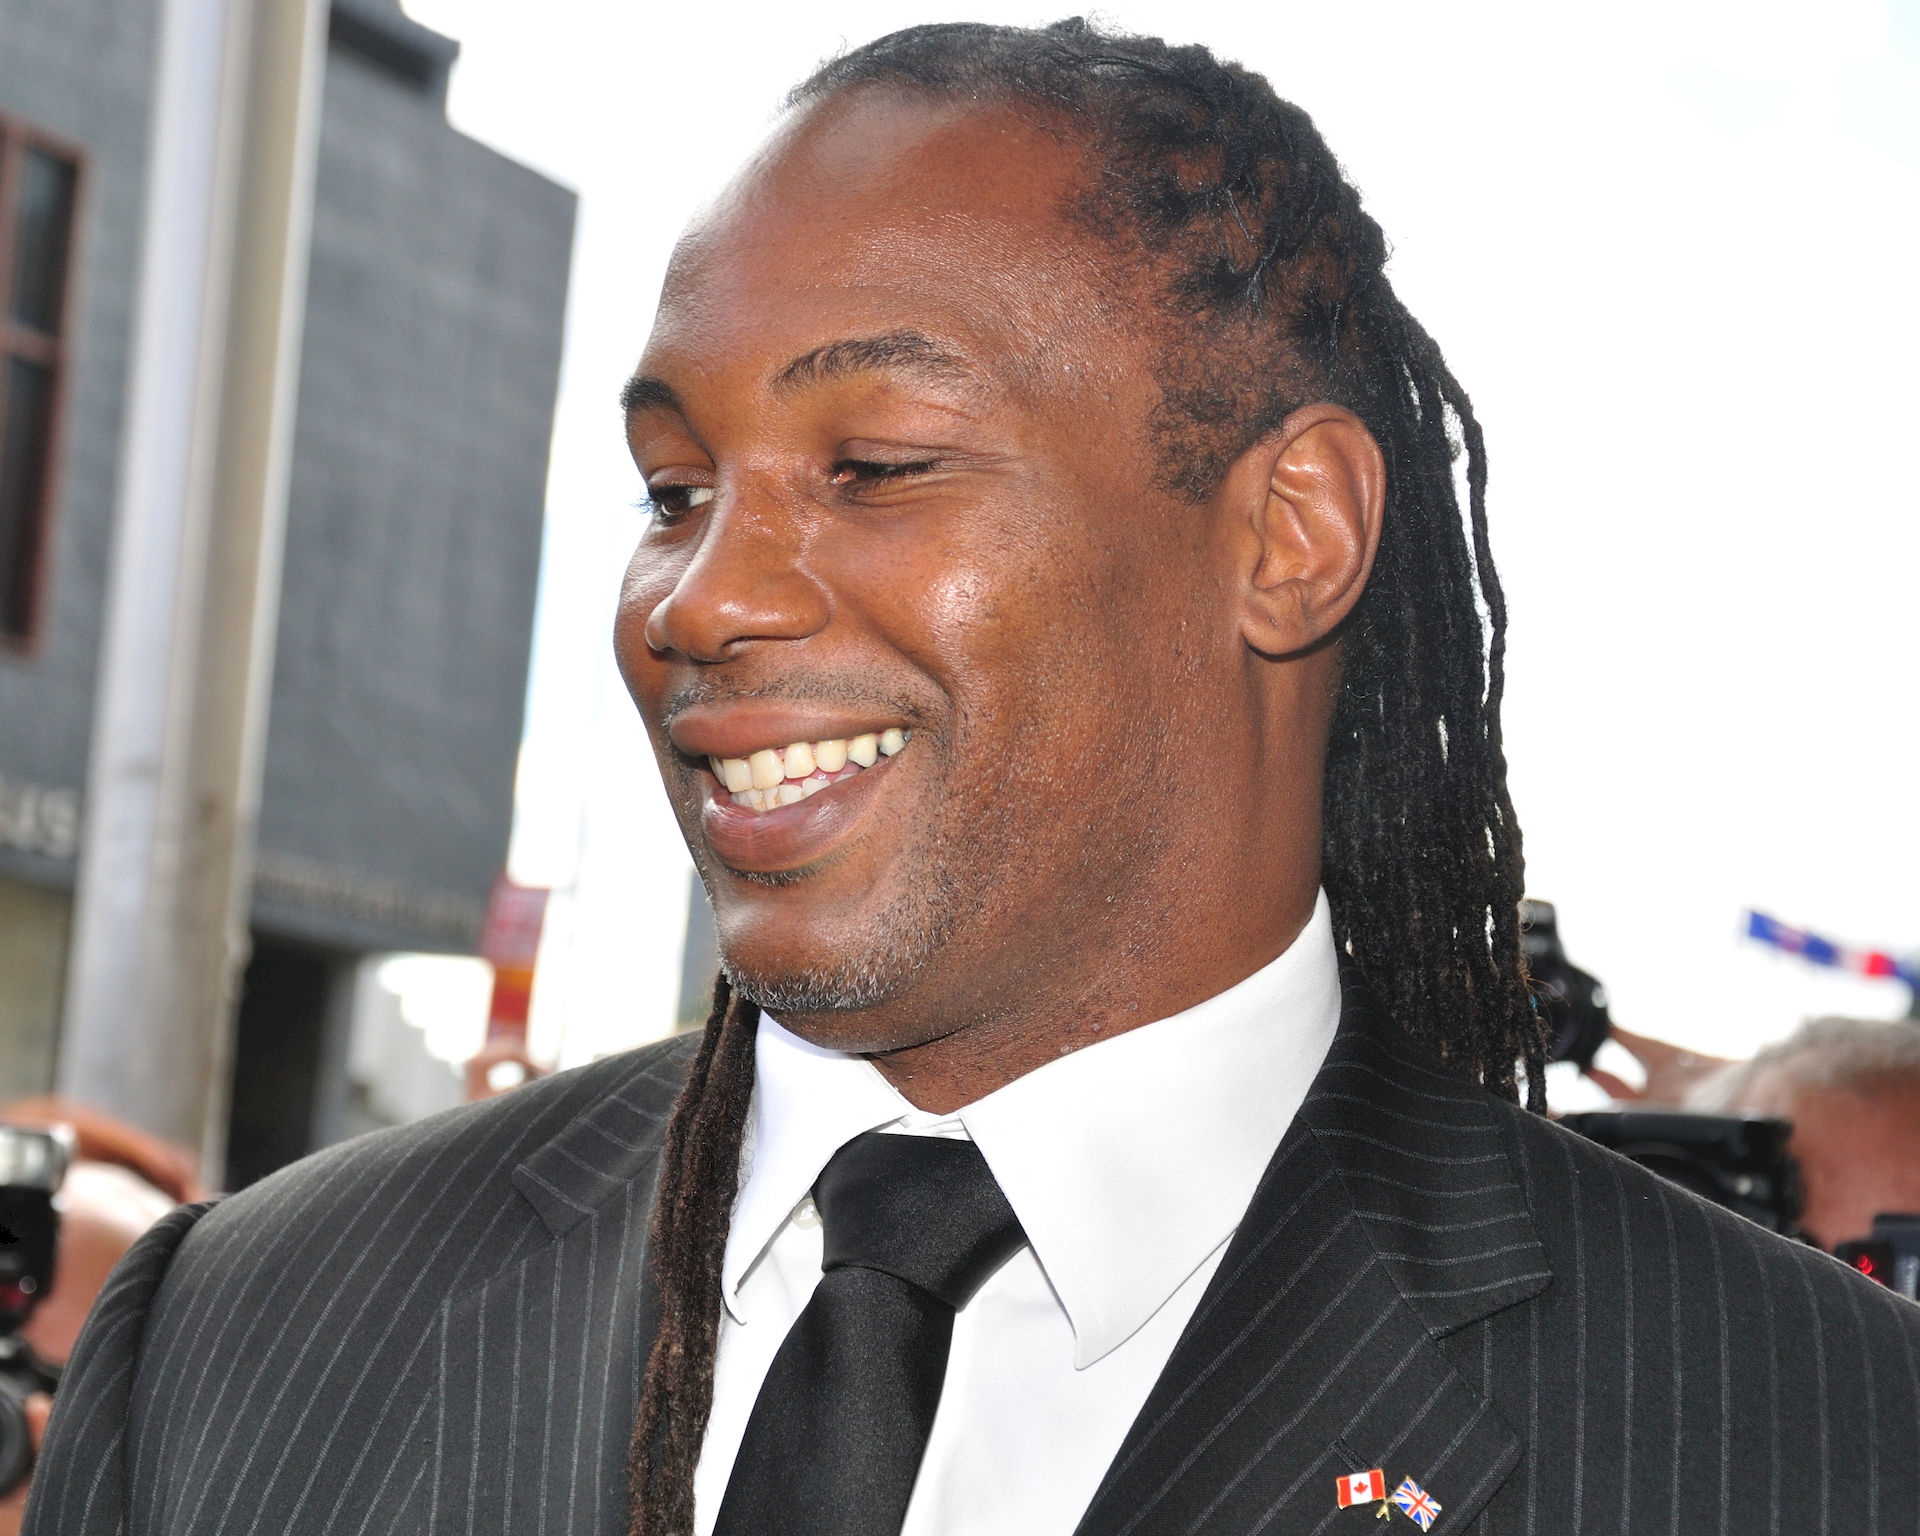 Photo of Lennox Lewis: Former heavyweight champion and professional boxer